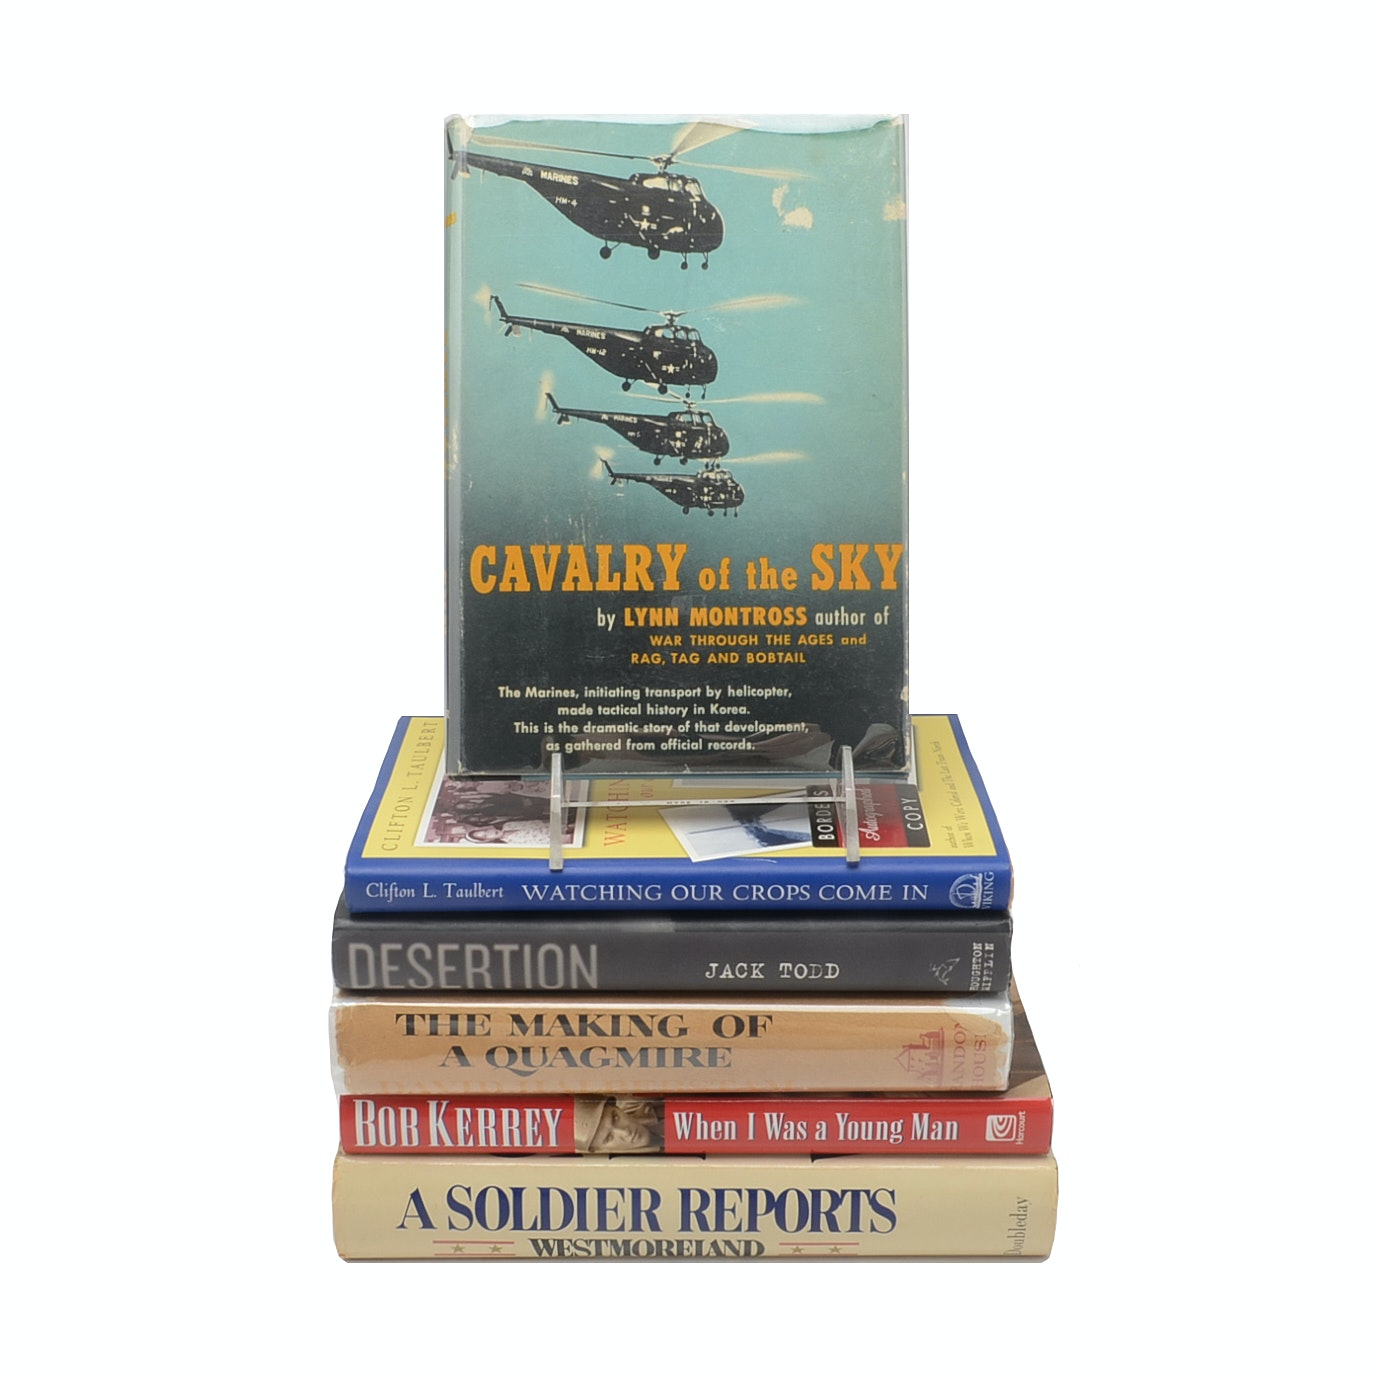 Group of Signed Vietnam War Books